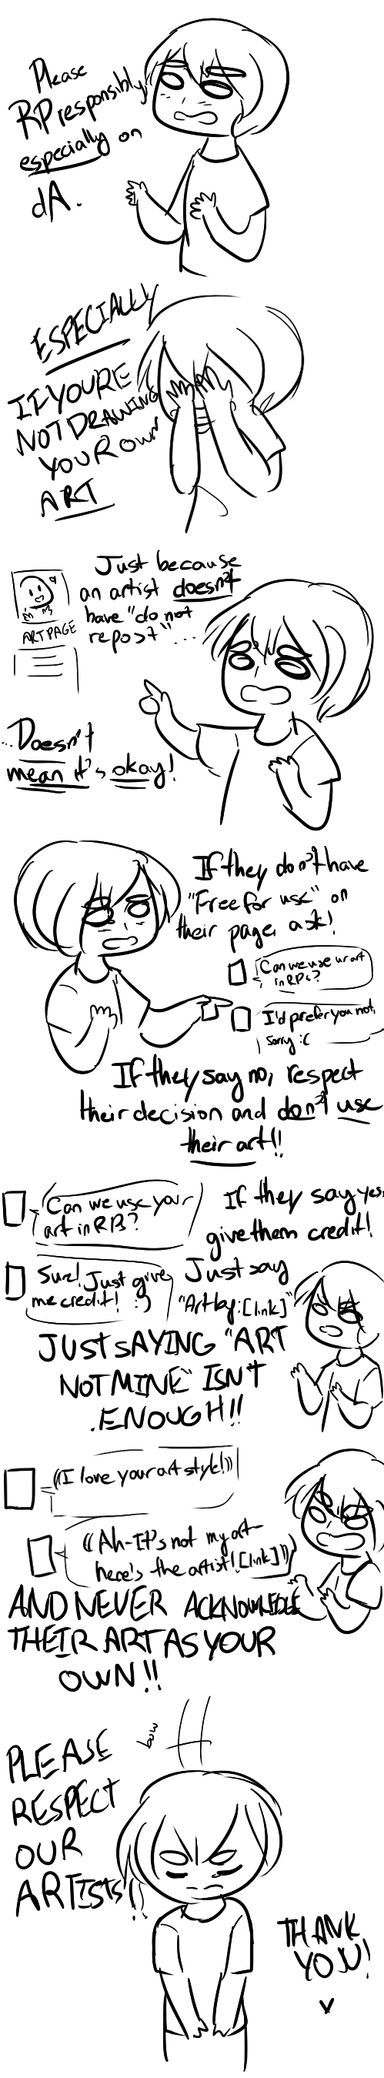 PSA about RPing on dA (OR ANYWHERE, REALLY) by HanabiChanx3